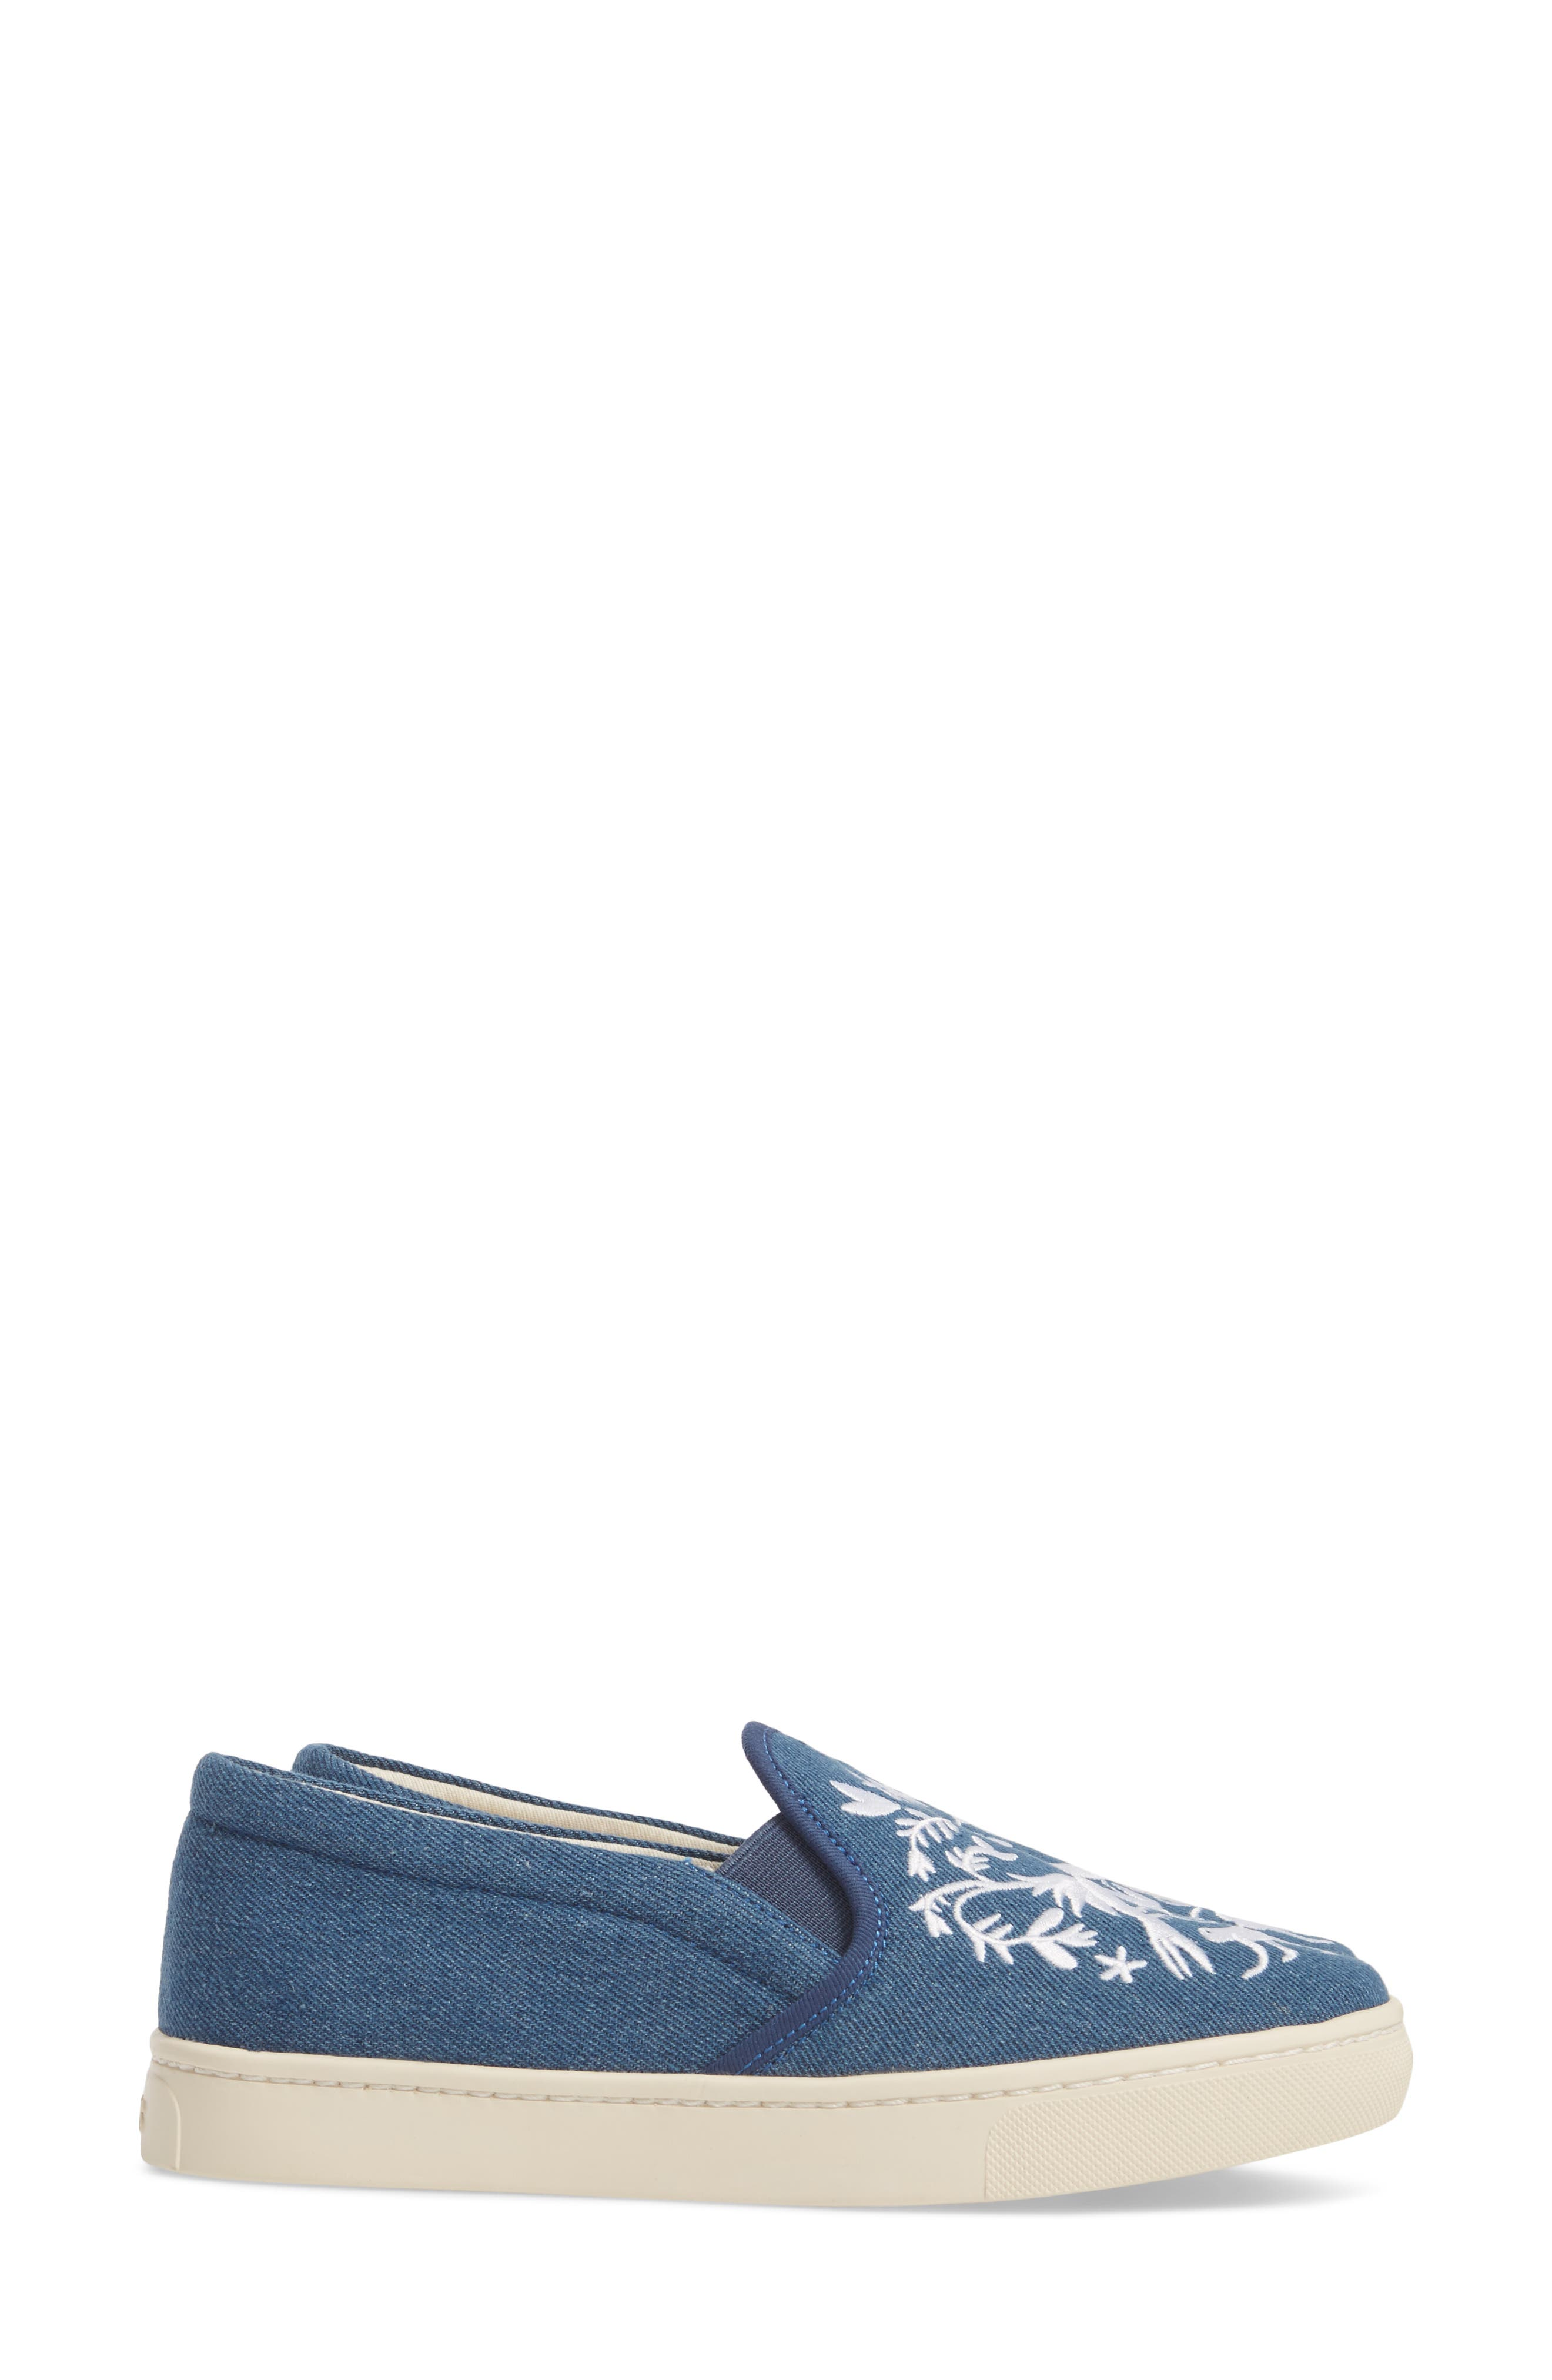 Otomi Slip-On Sneaker,                             Alternate thumbnail 3, color,                             426